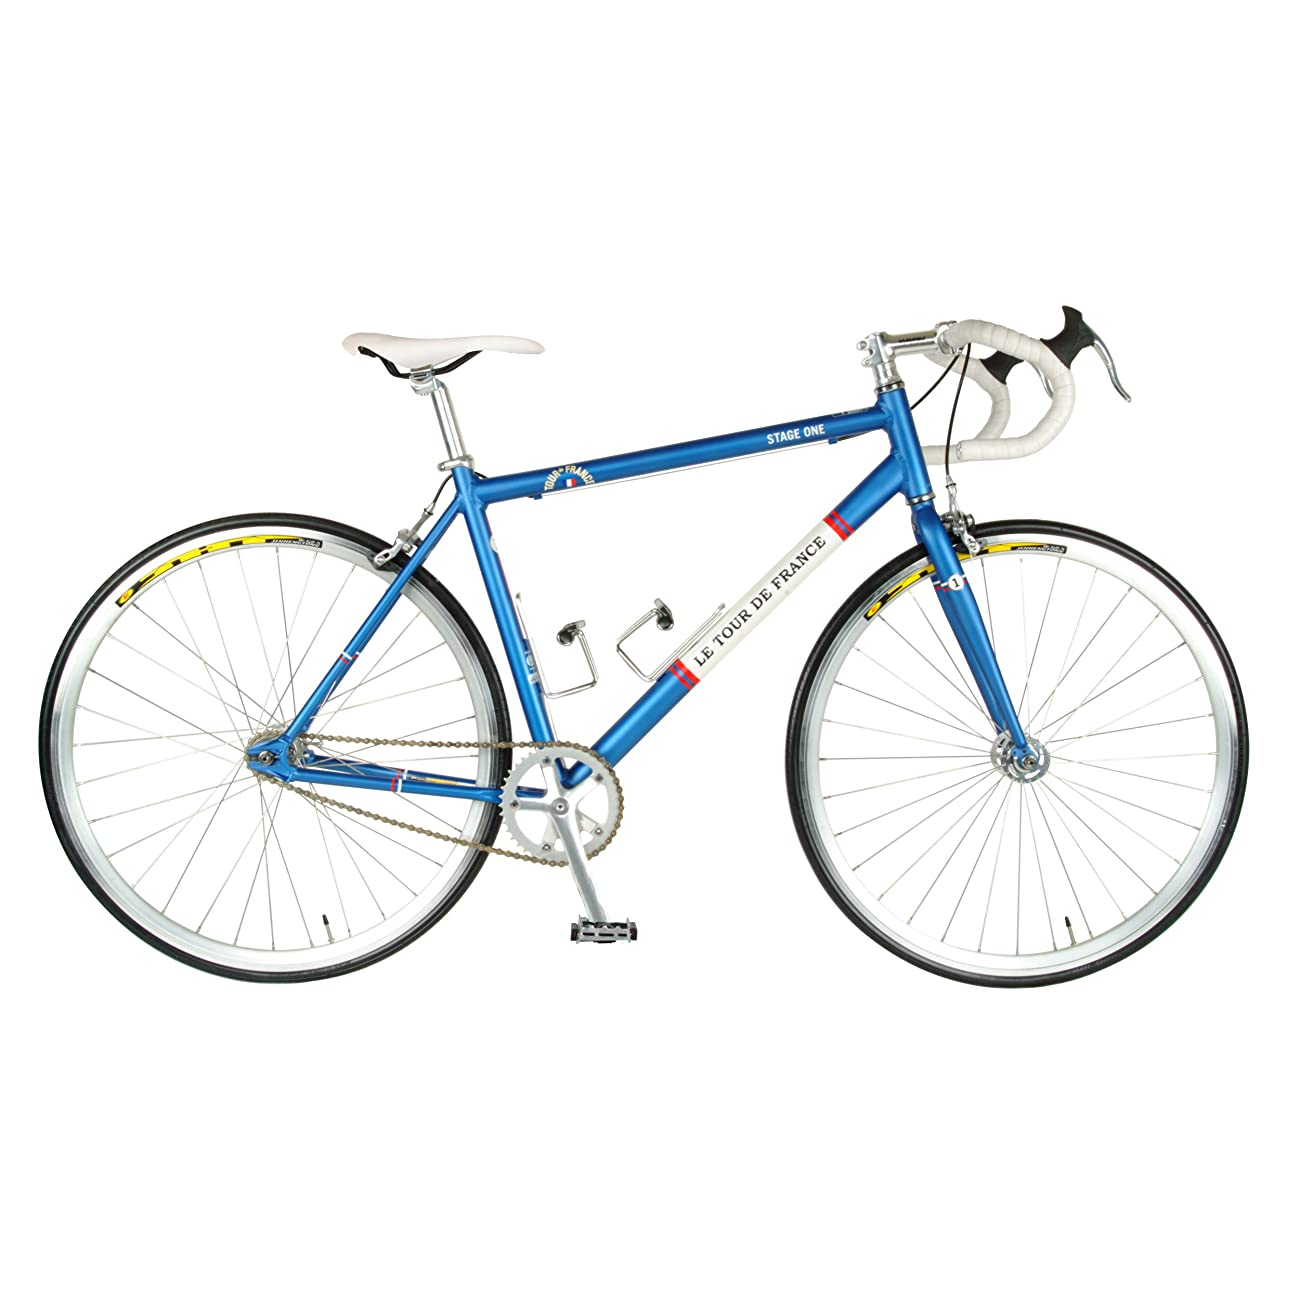 Tour de FranceStage One Vintage Fixie Bike, 700c Wheels, Men's Bike, Blue, 45 cm Frame, 51 cm Frame, 56 cm Frame 0